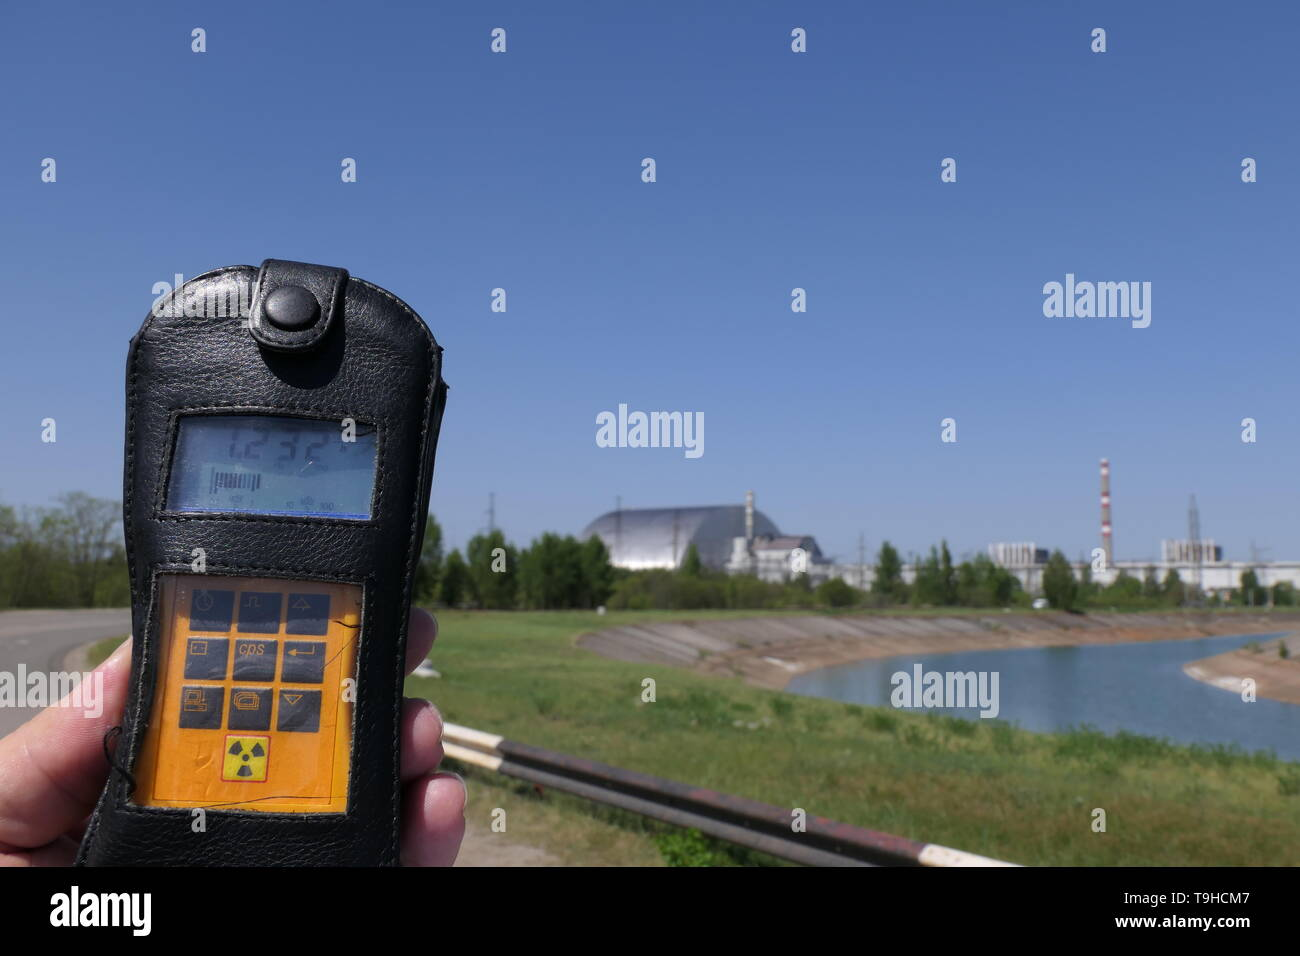 View of the Reactor 4 from a safe distance with a Geiger counter, inside the Chernobyl exclusion zone, Ukraine - Stock Image